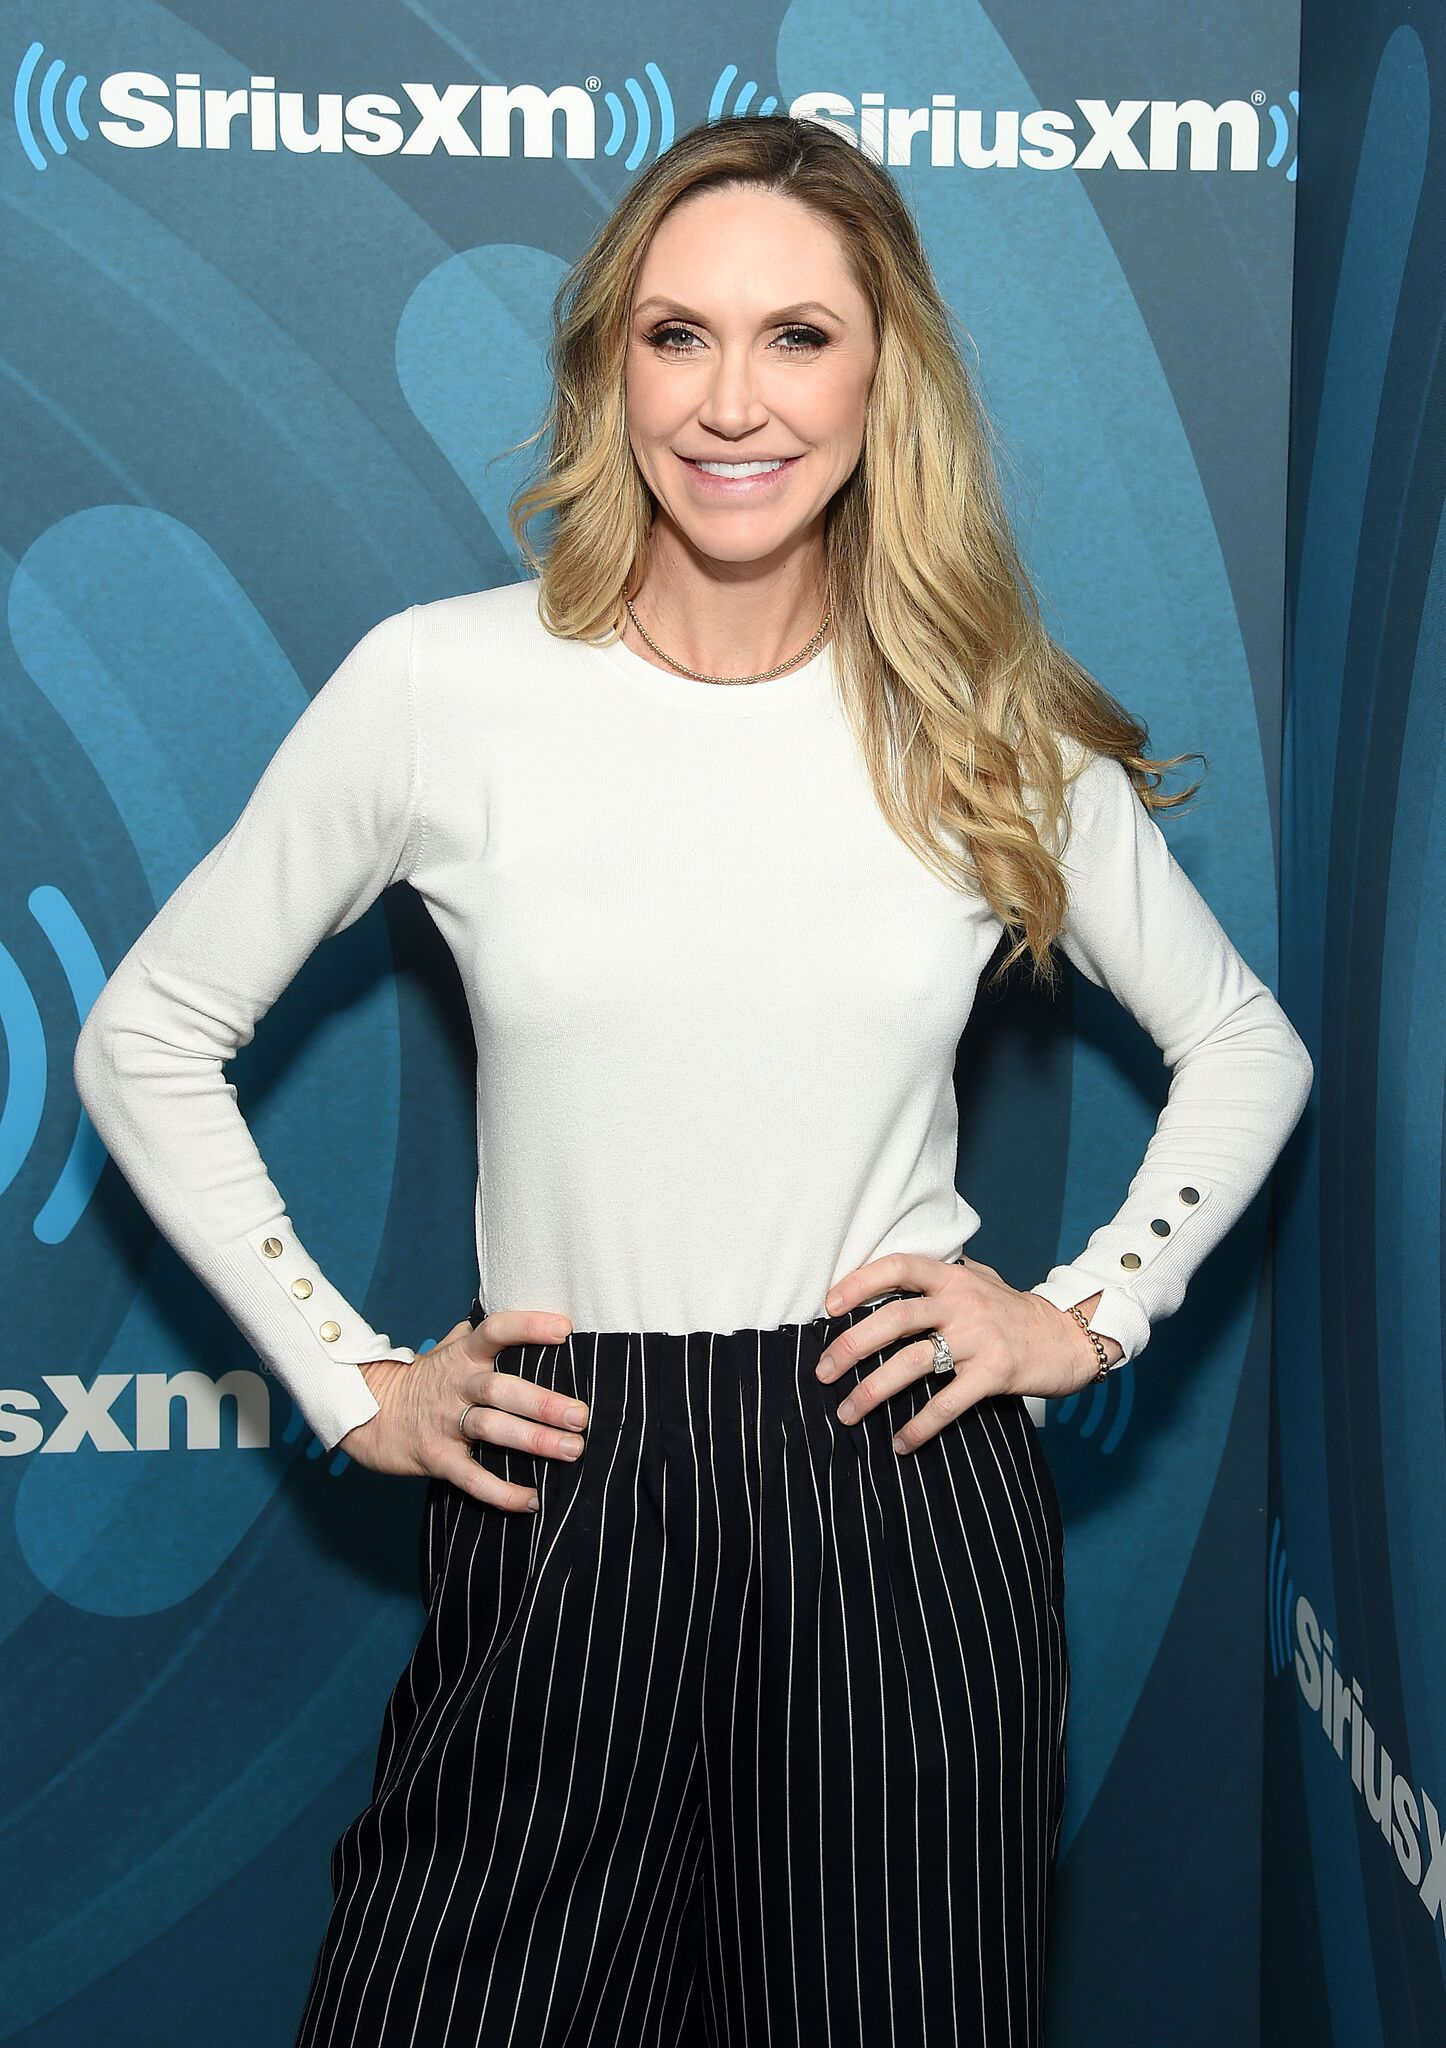 Lara Trump visits SiriusXM at SiriusXM Studios on March 28, 2019 | Photo: Getty Images